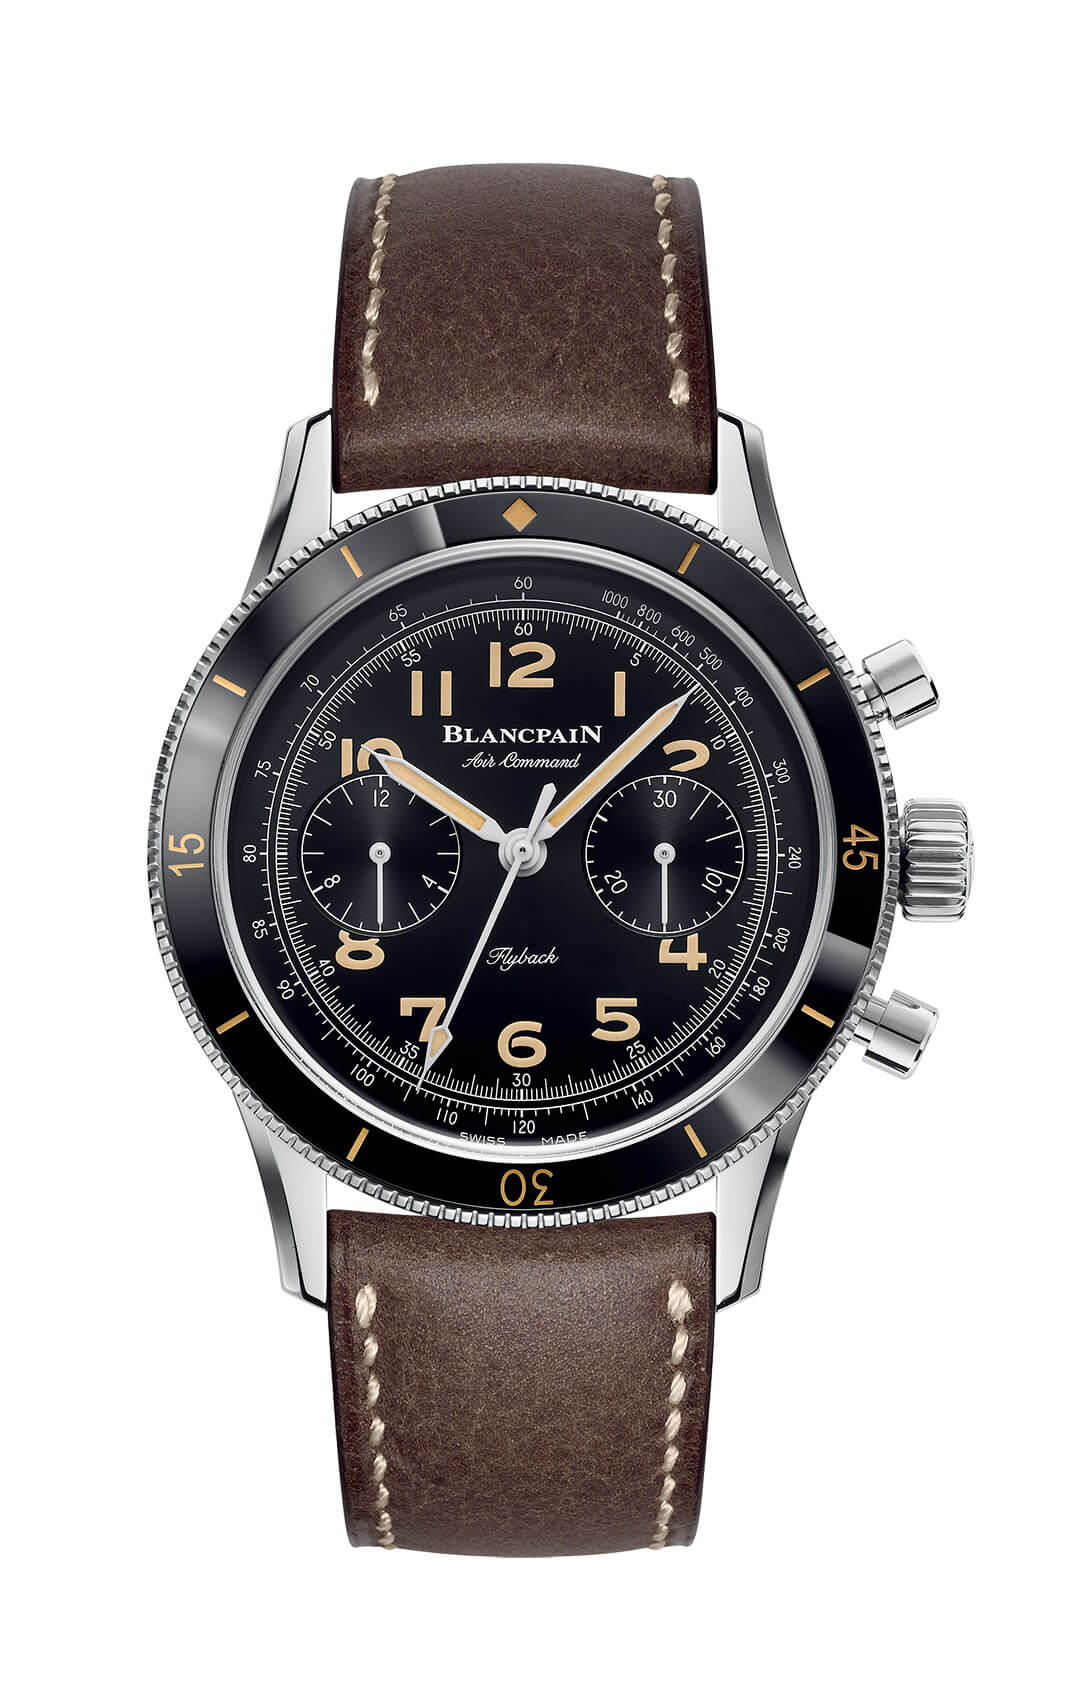 Blancpain Air Command front